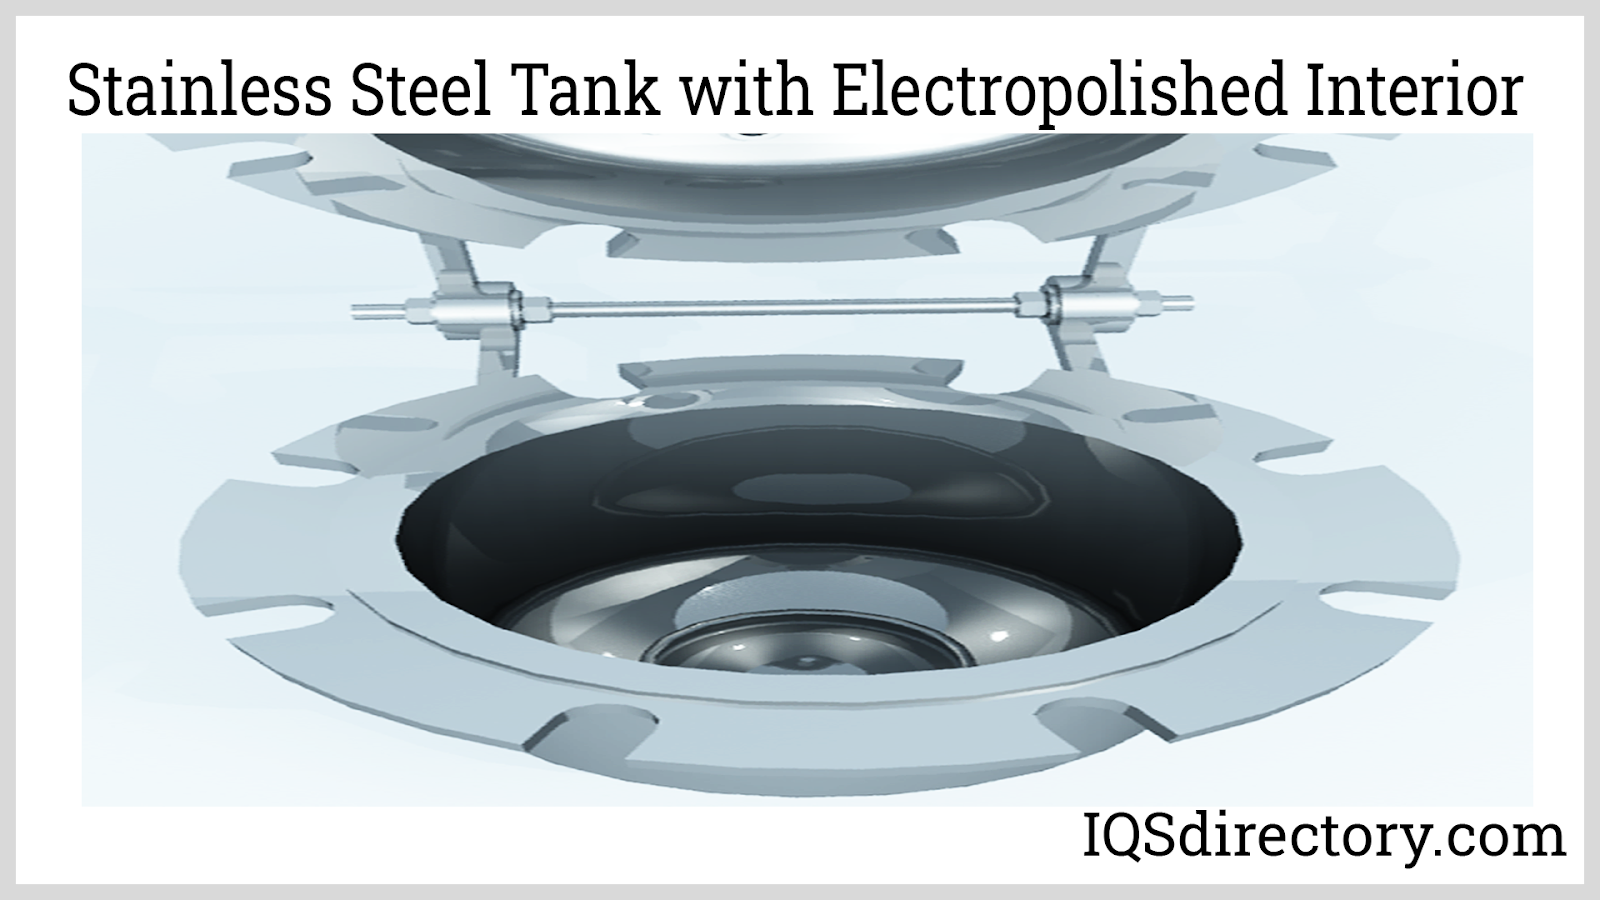 Stainless Steel Tank with Electropolished Interior